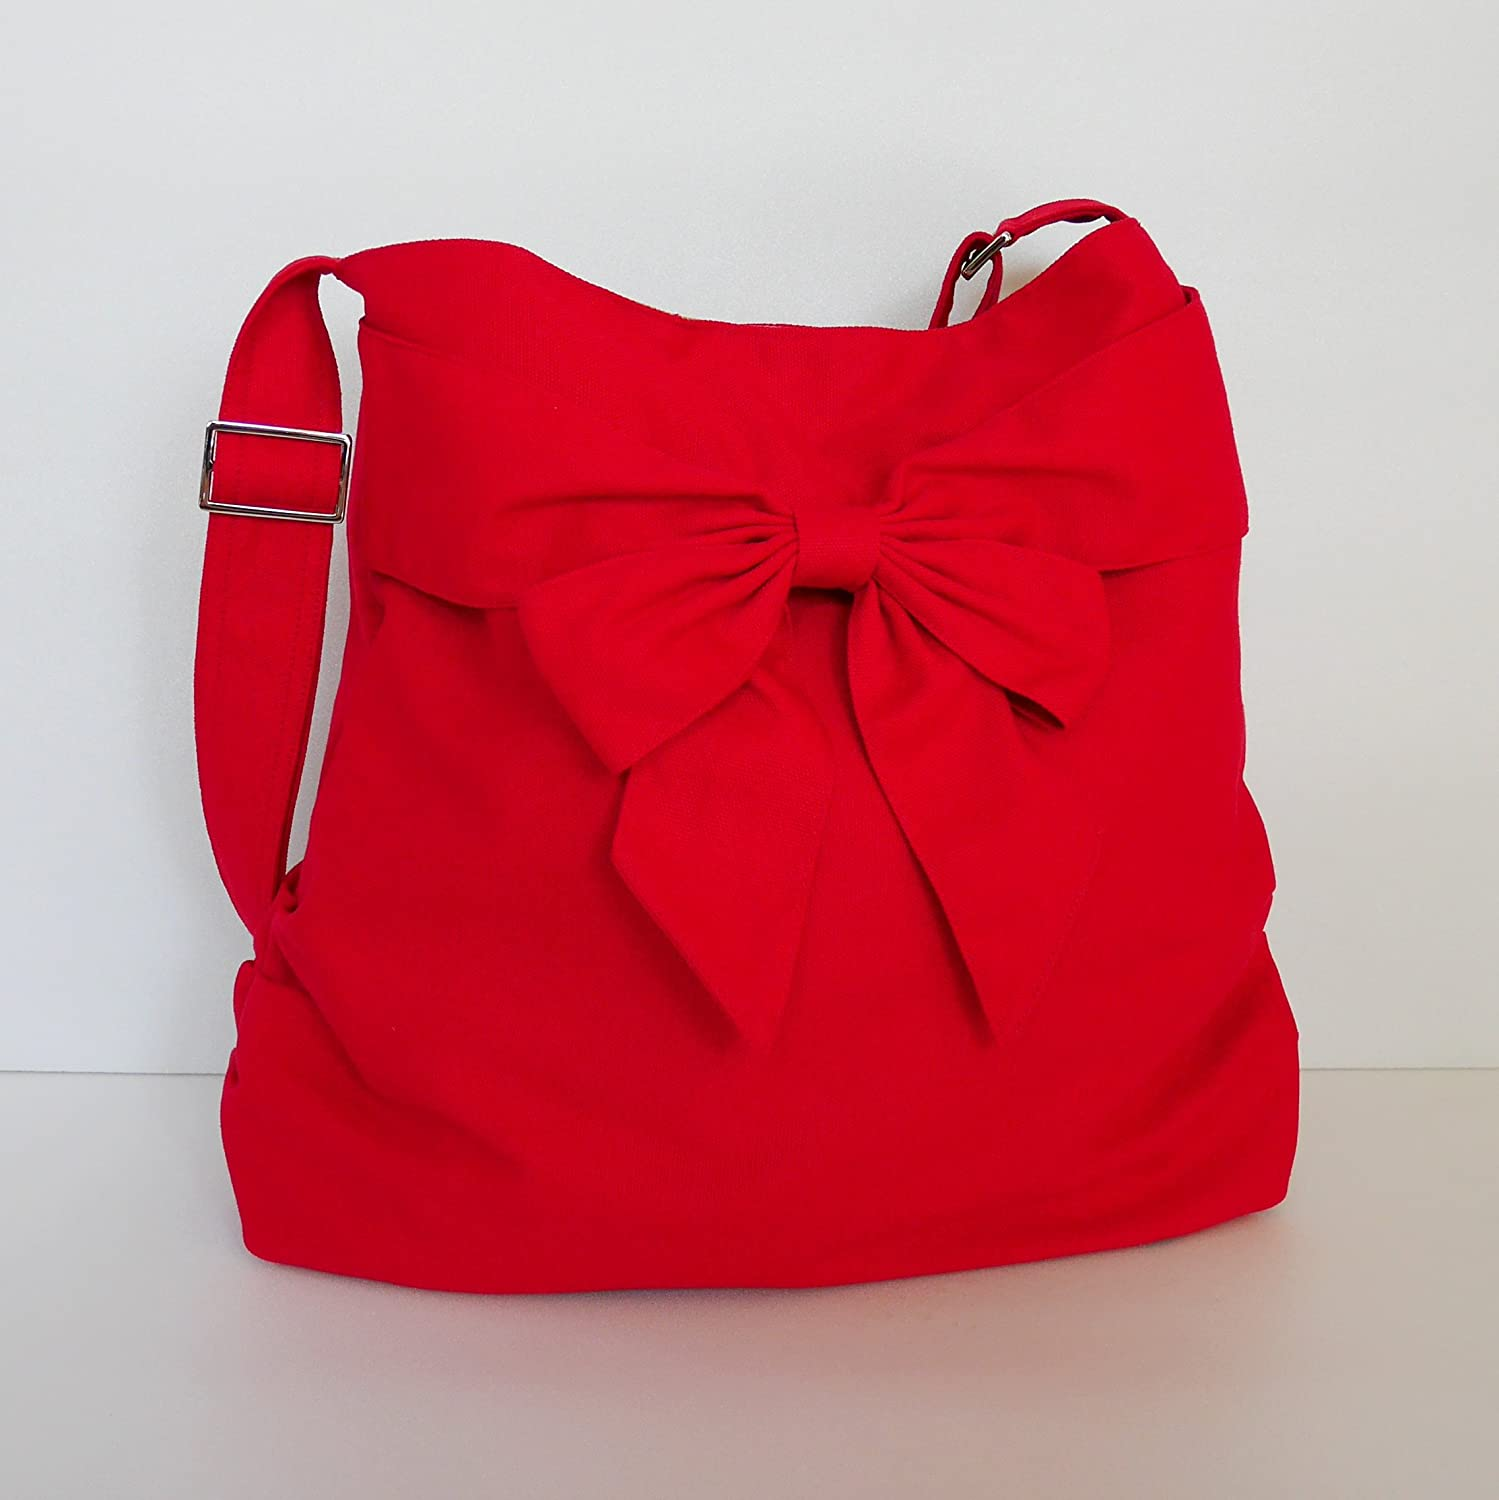 Virine red shoulder bag, cross body bag, messenger bag, everyday bag, handbag, travel bag, tote, bow, for women - JENNIFER